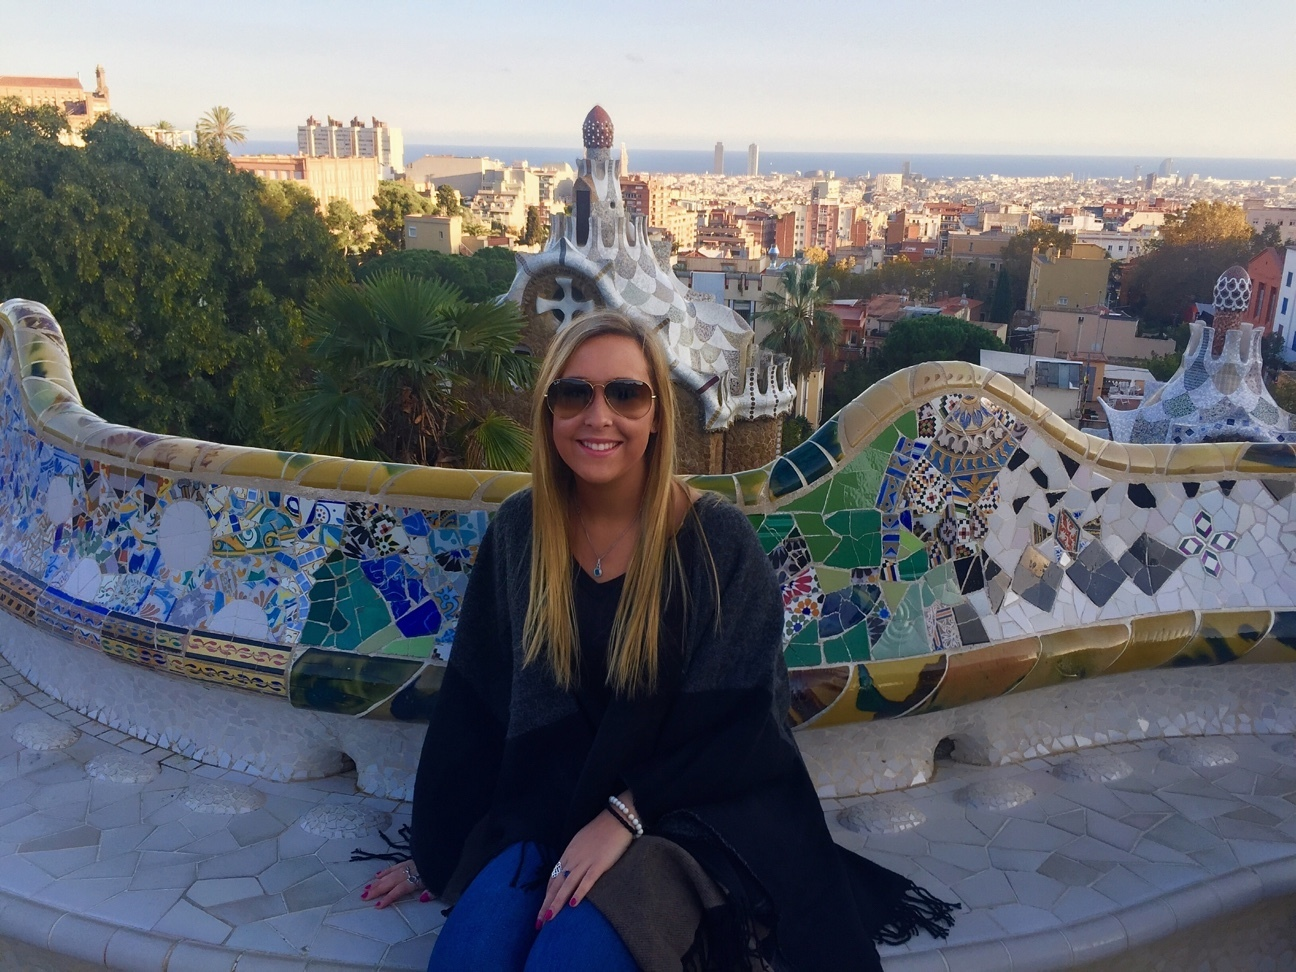 Park guell  a big tourist attraction in barcelona